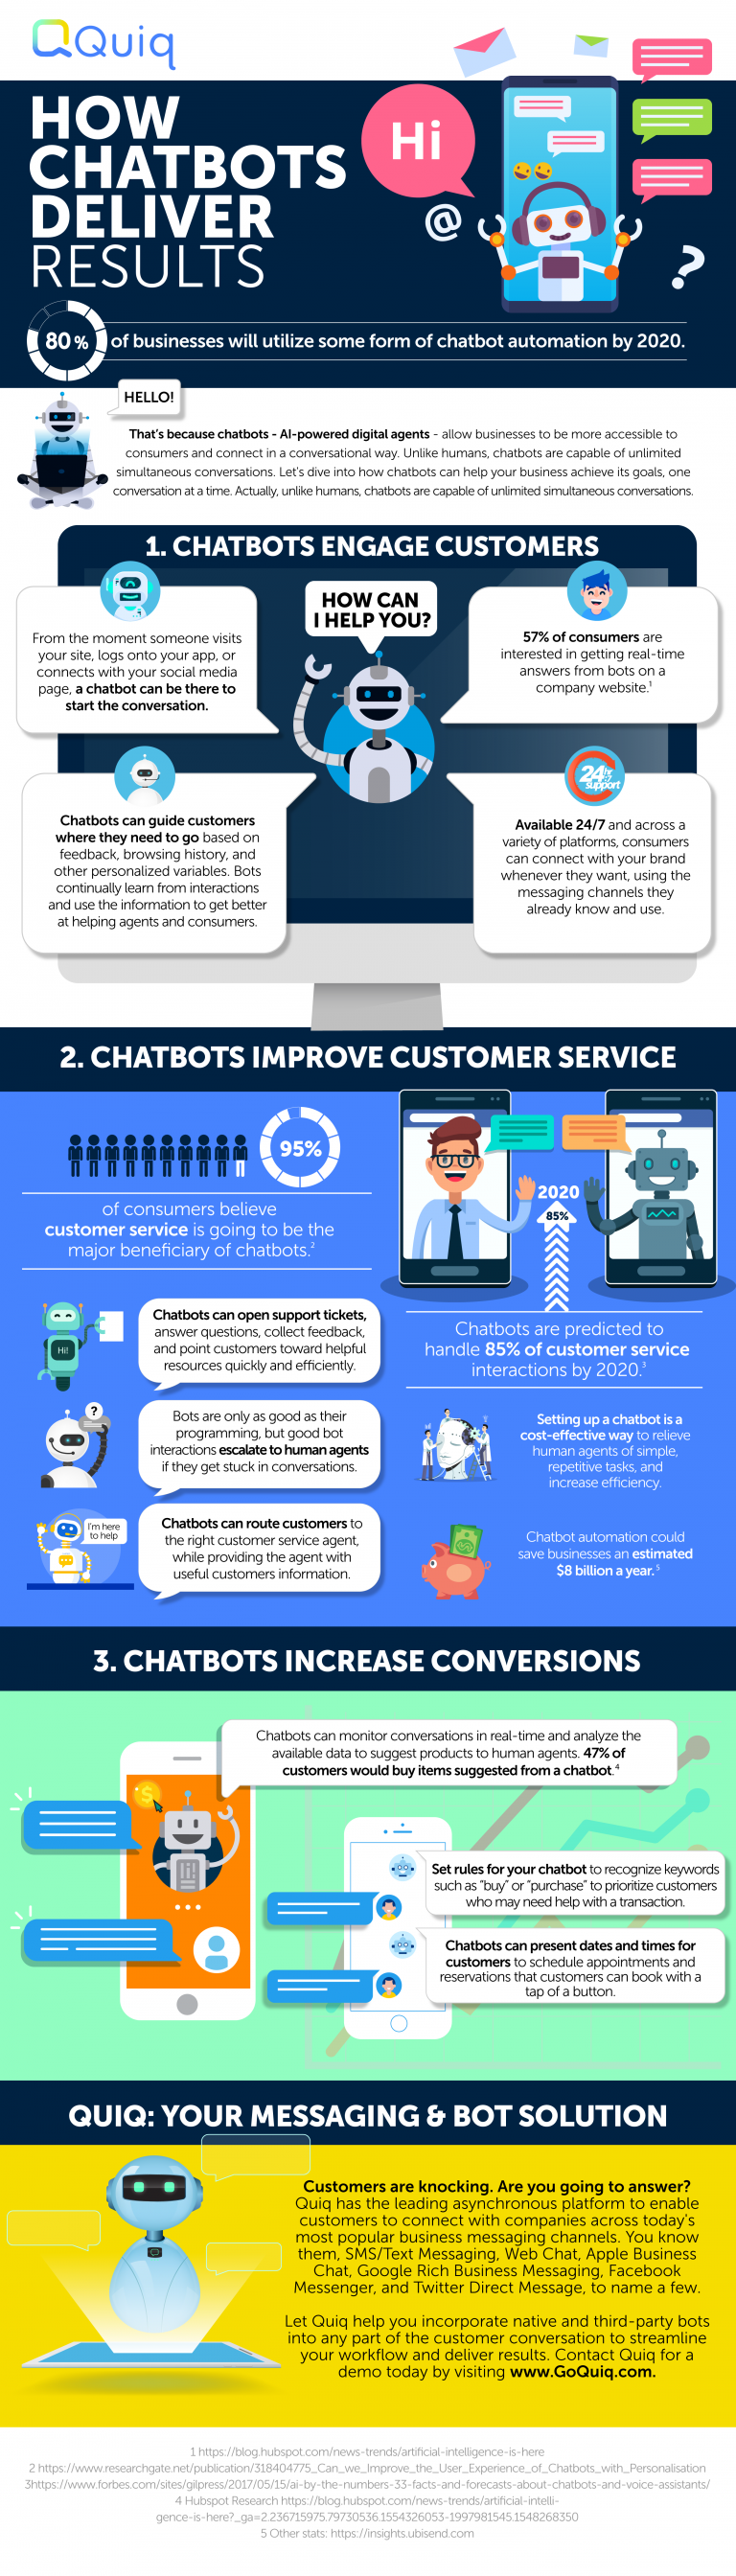 Chatbots - augmenting NOT replacing the human workforce